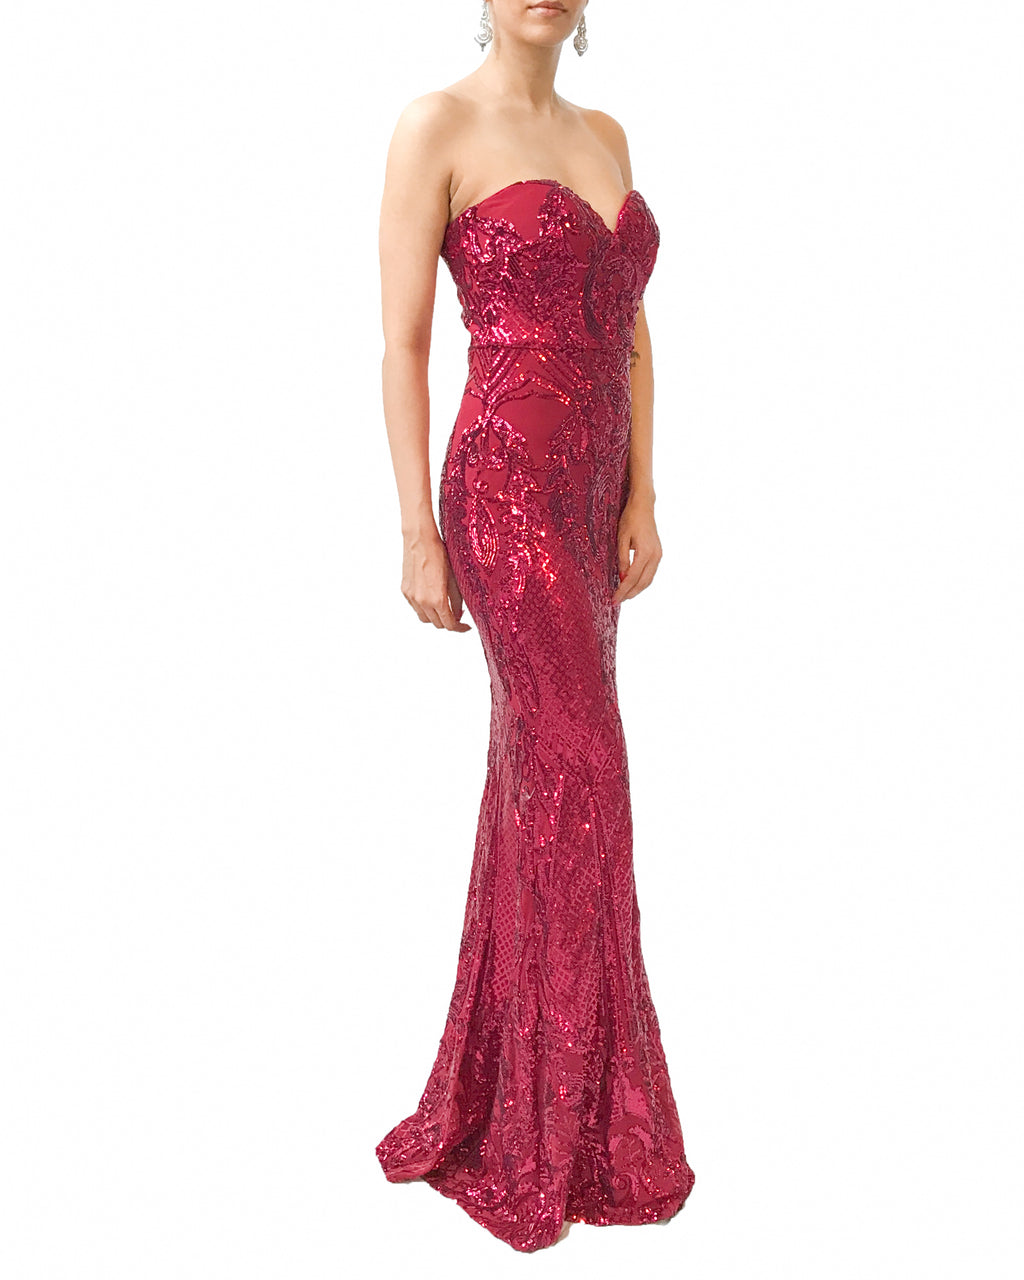 Strapless Sweetheart Sequin Gown